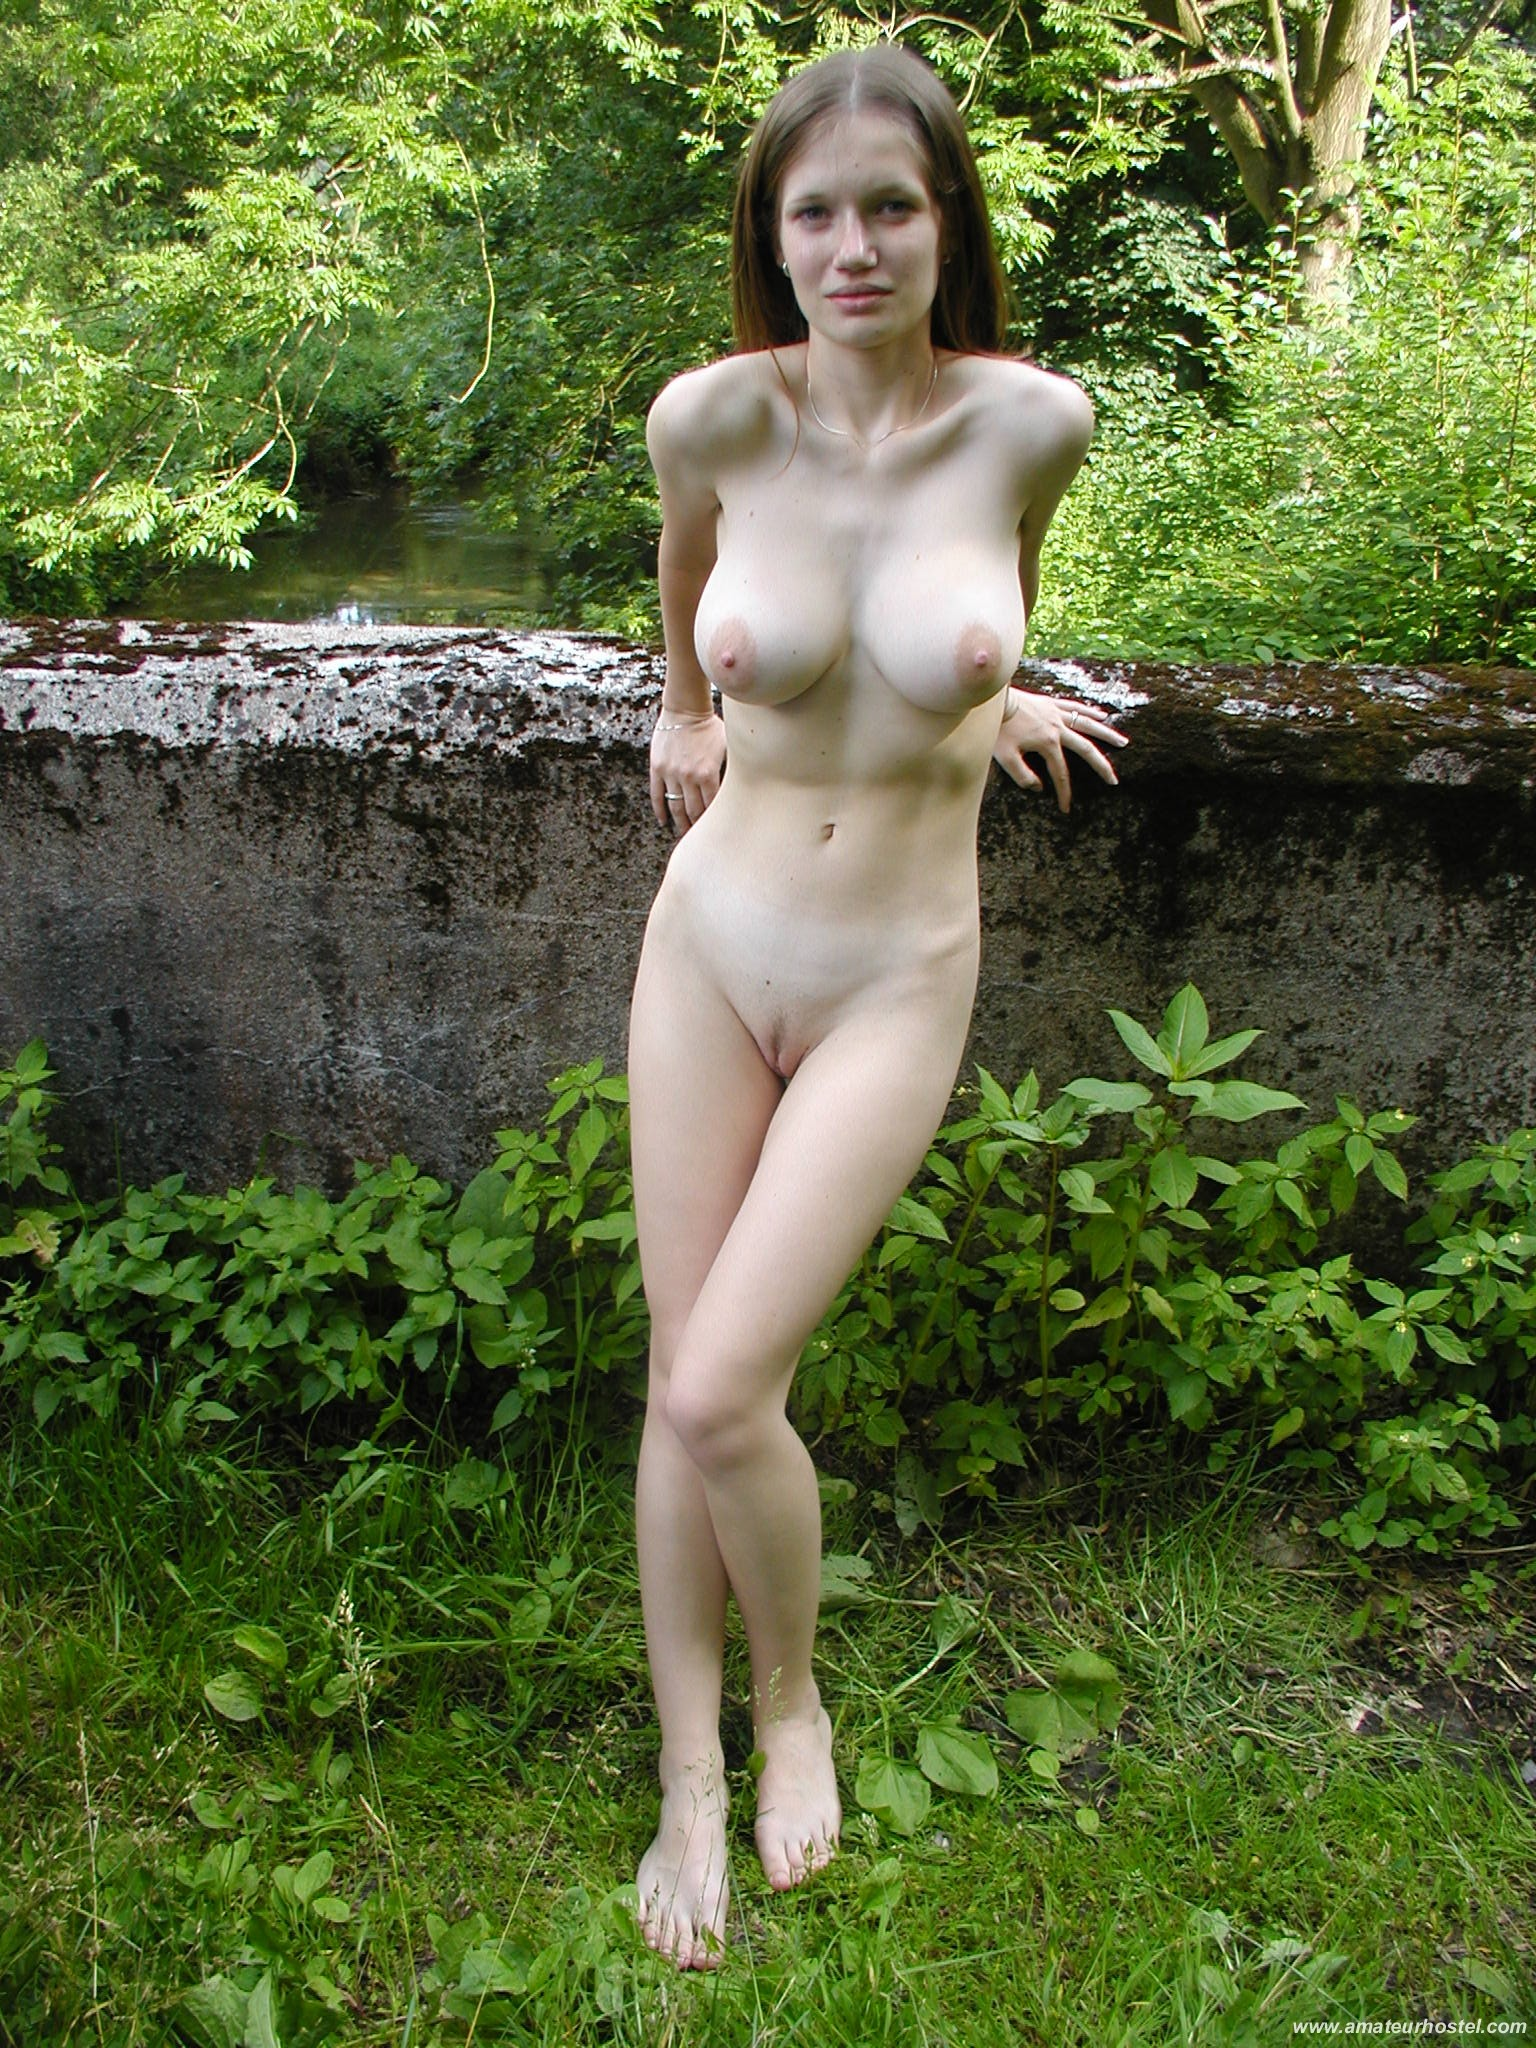 Amature Outdoor Sex Video